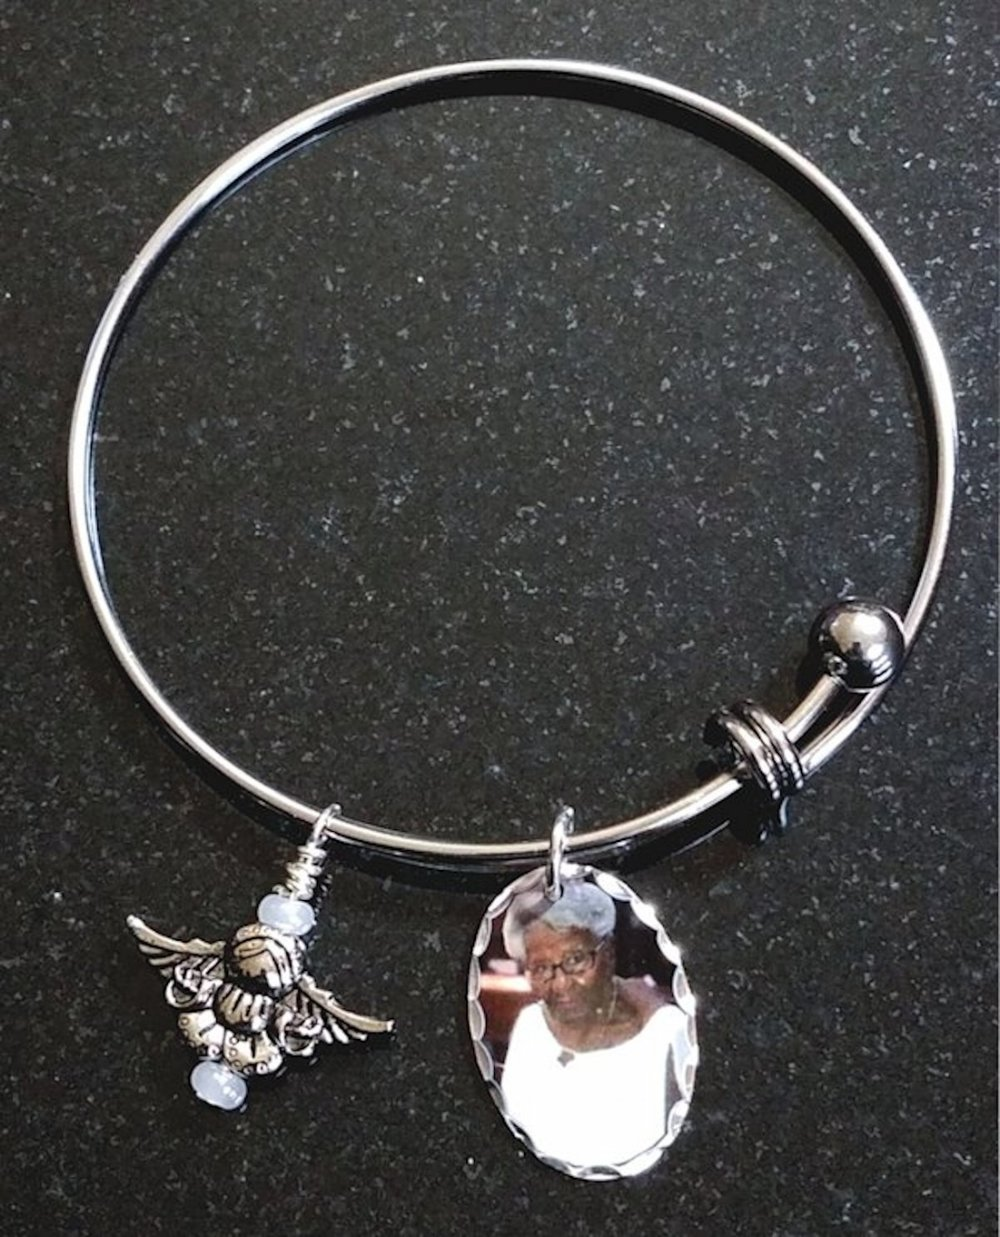 Bangle Bracelet Add-on Charms.jpg